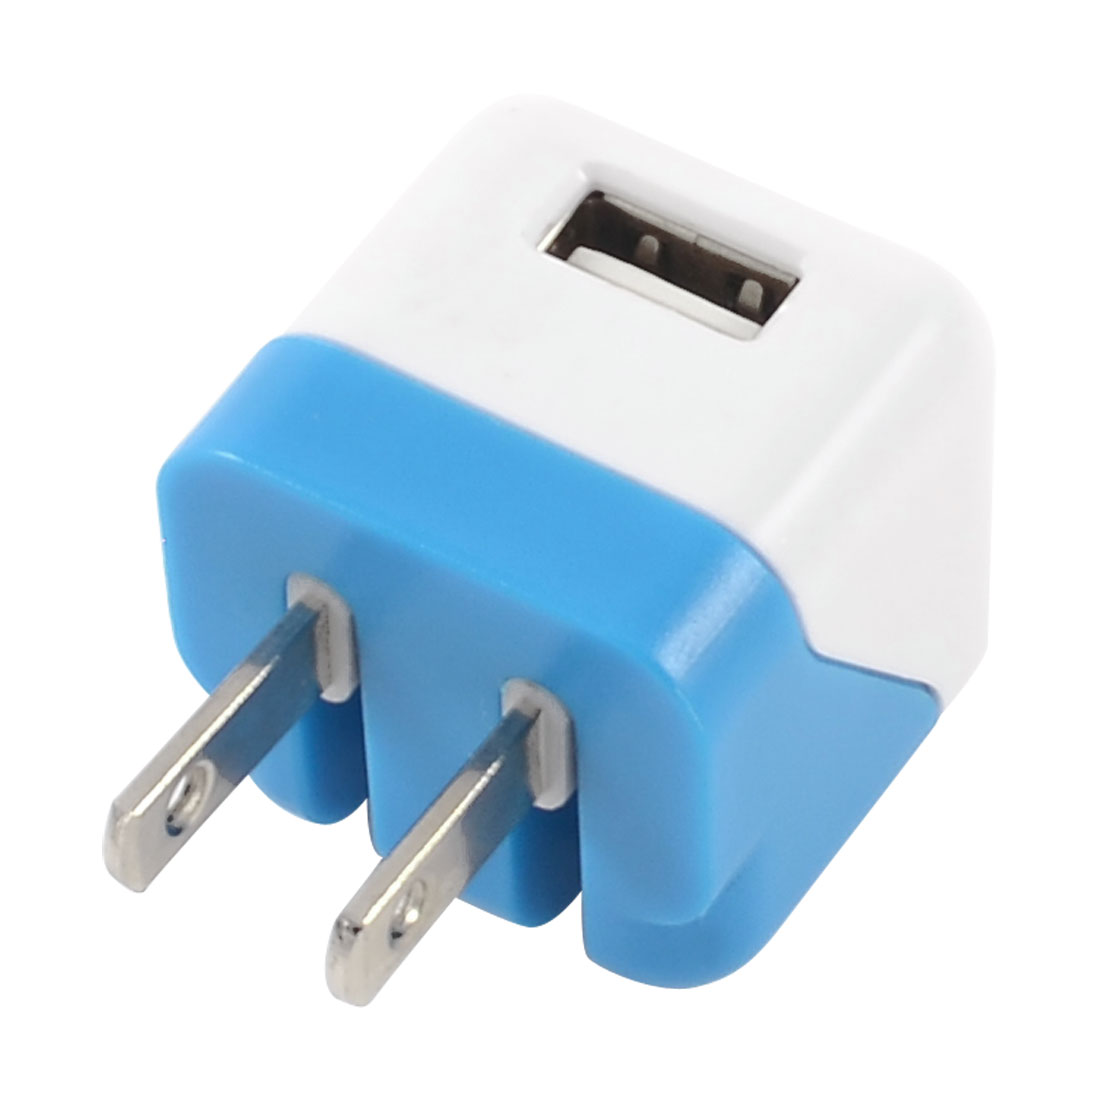 AC 100-240V US Plug to USB 2.0 Charger Adapter Blue White for Phone